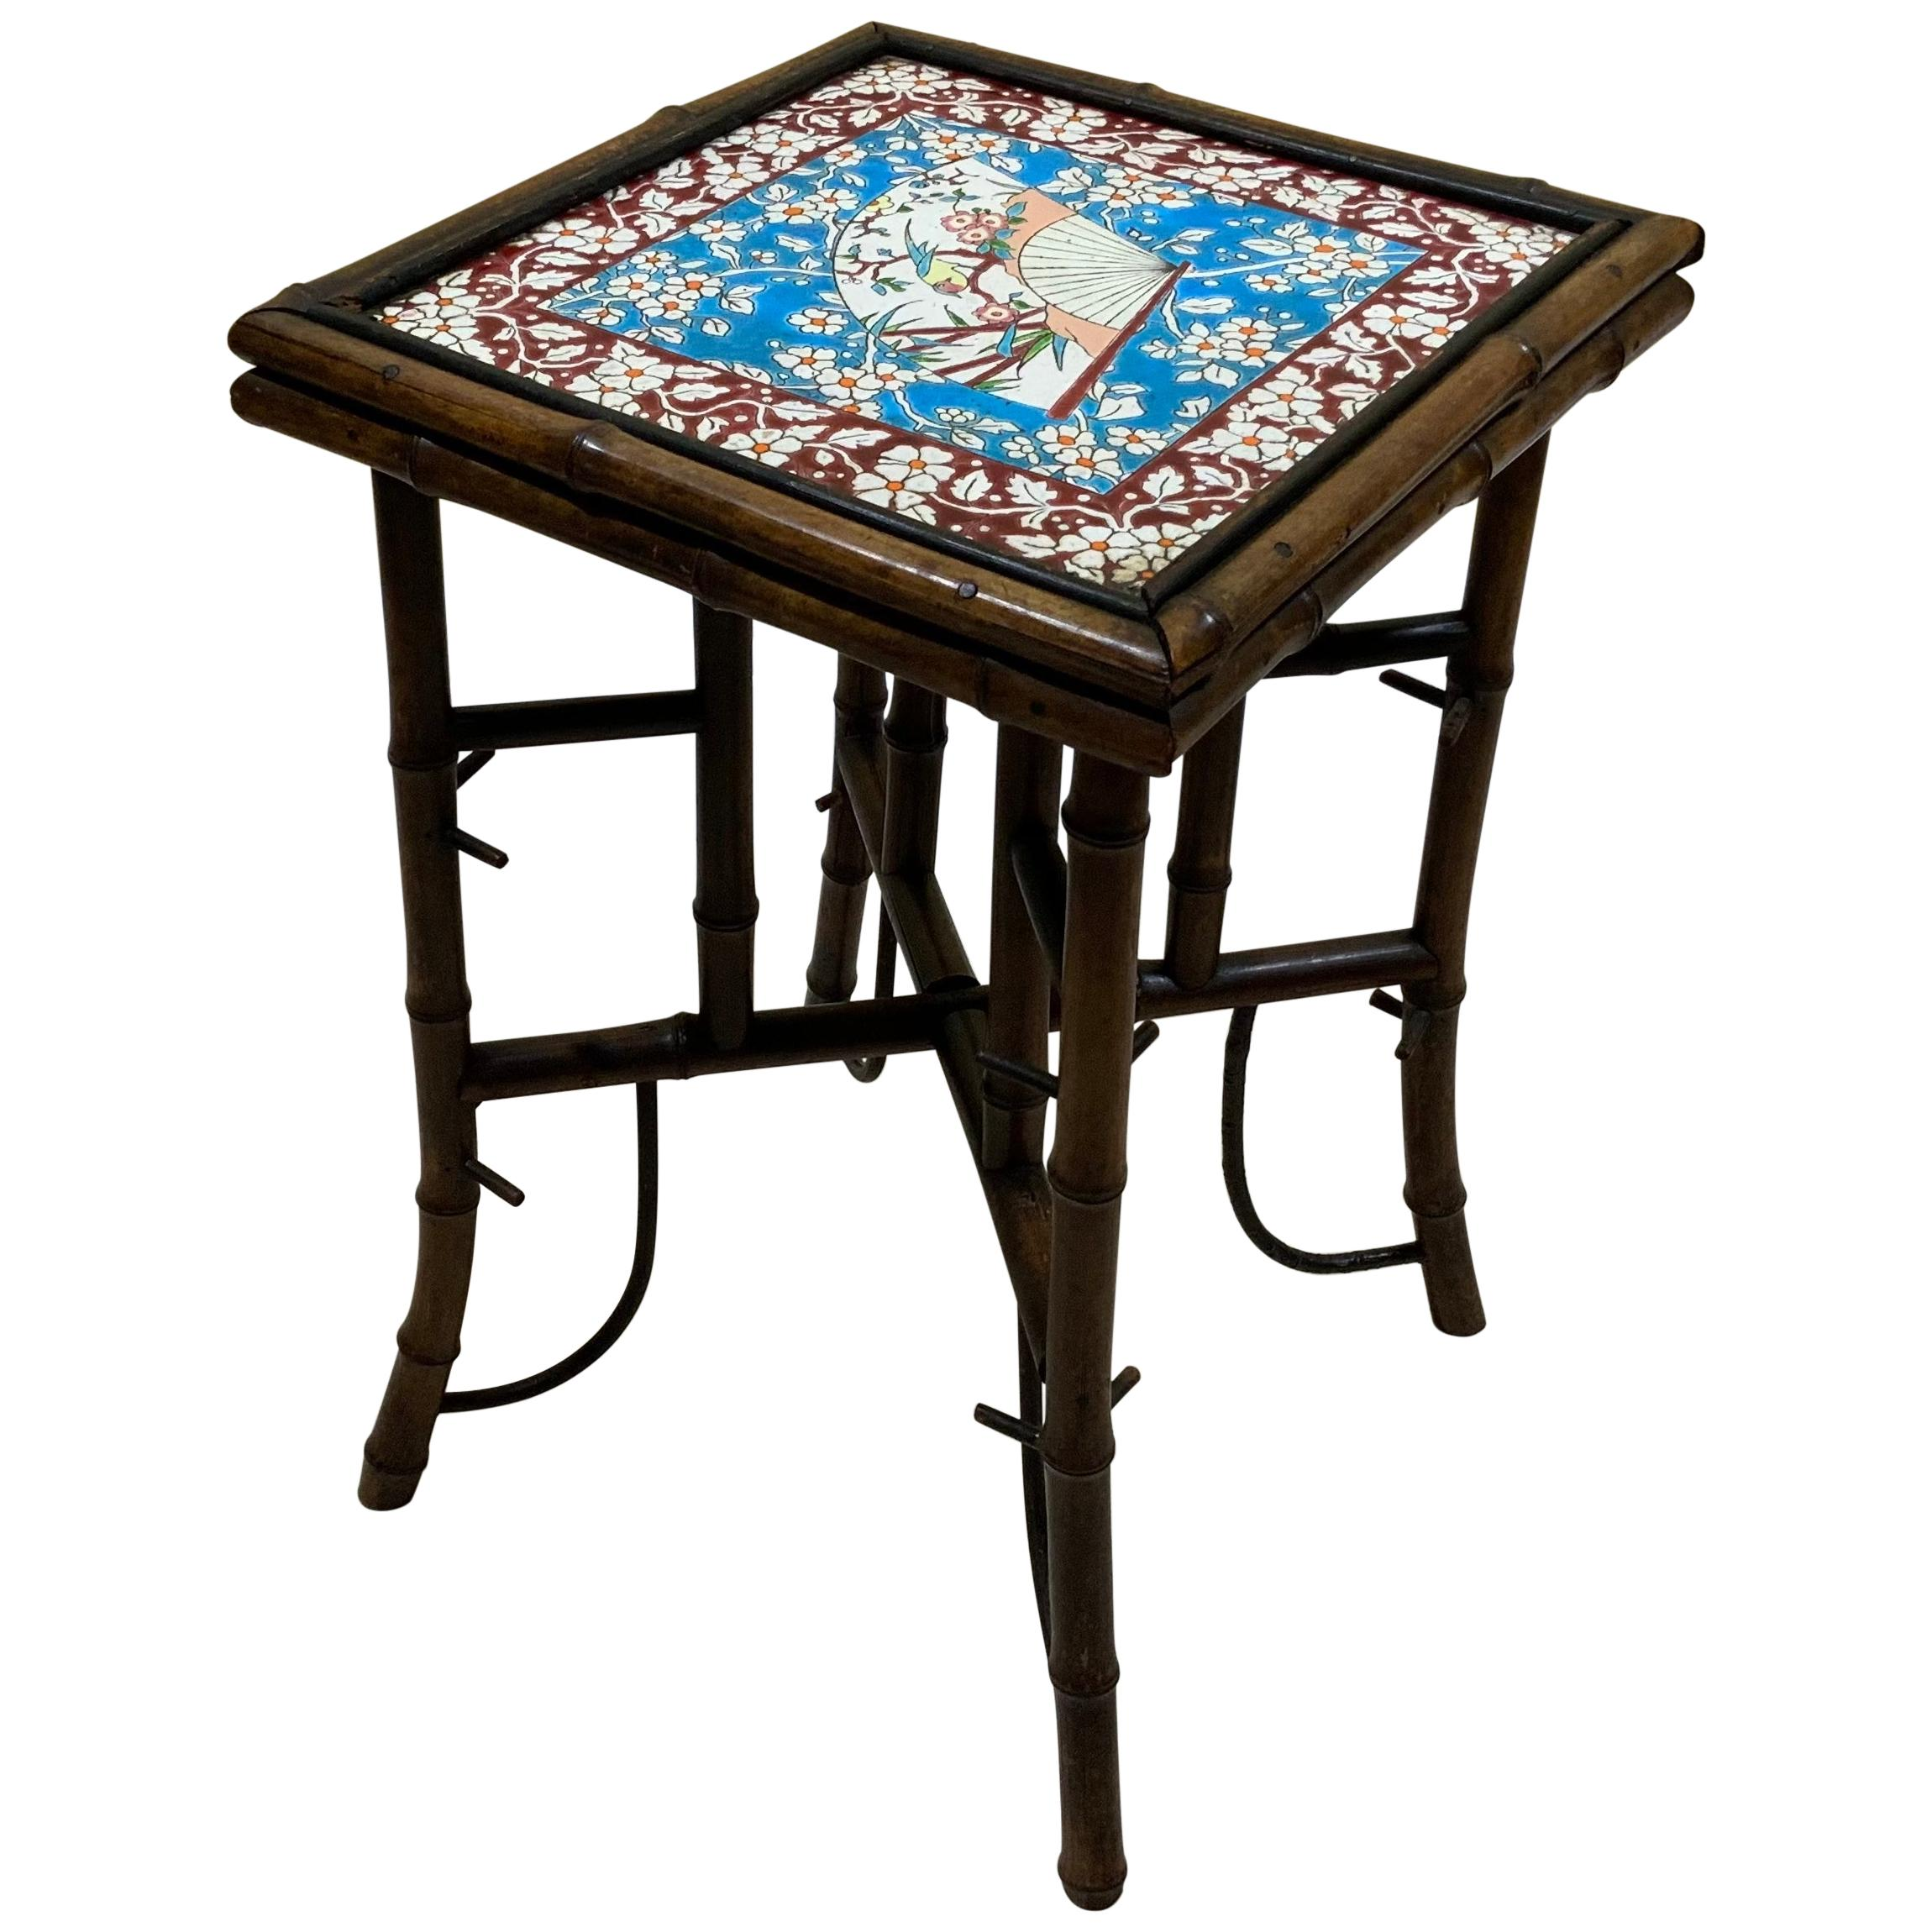 Antique Top Tile Bamboo Small Table